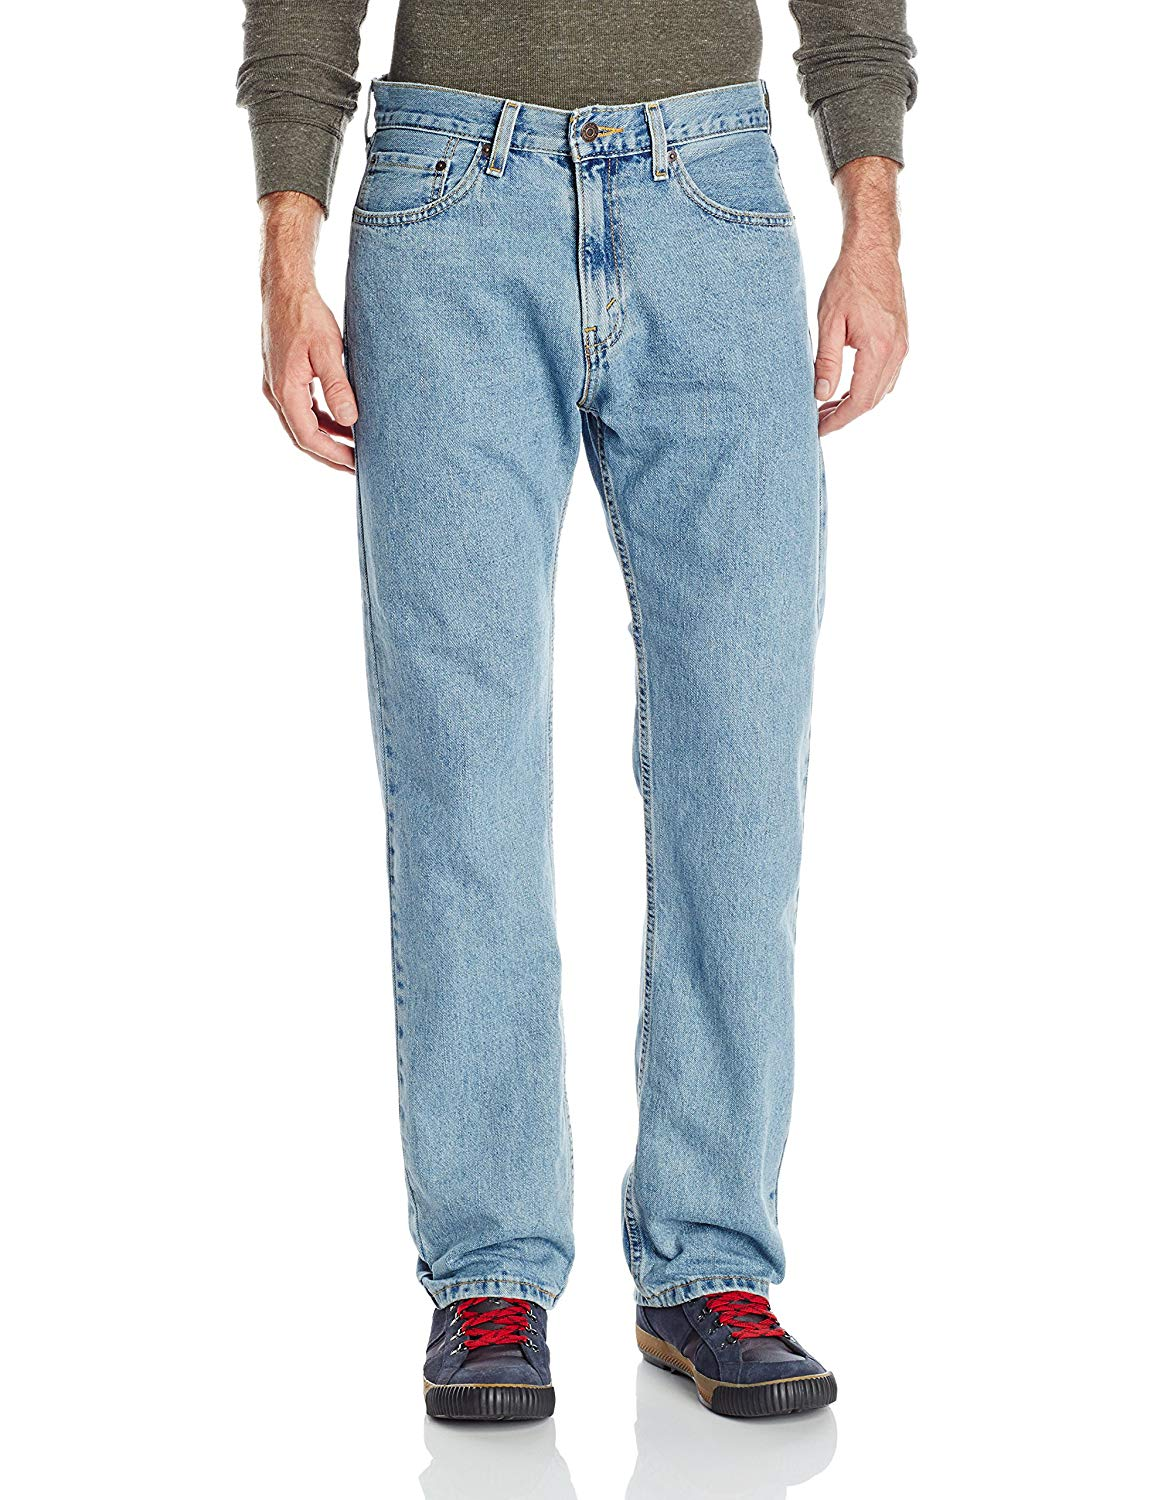 9e2df3b16a8 Levi's Jeans Signature Gold by Levi Strauss NEW Blue Mens 29x30 Classic $49  #205